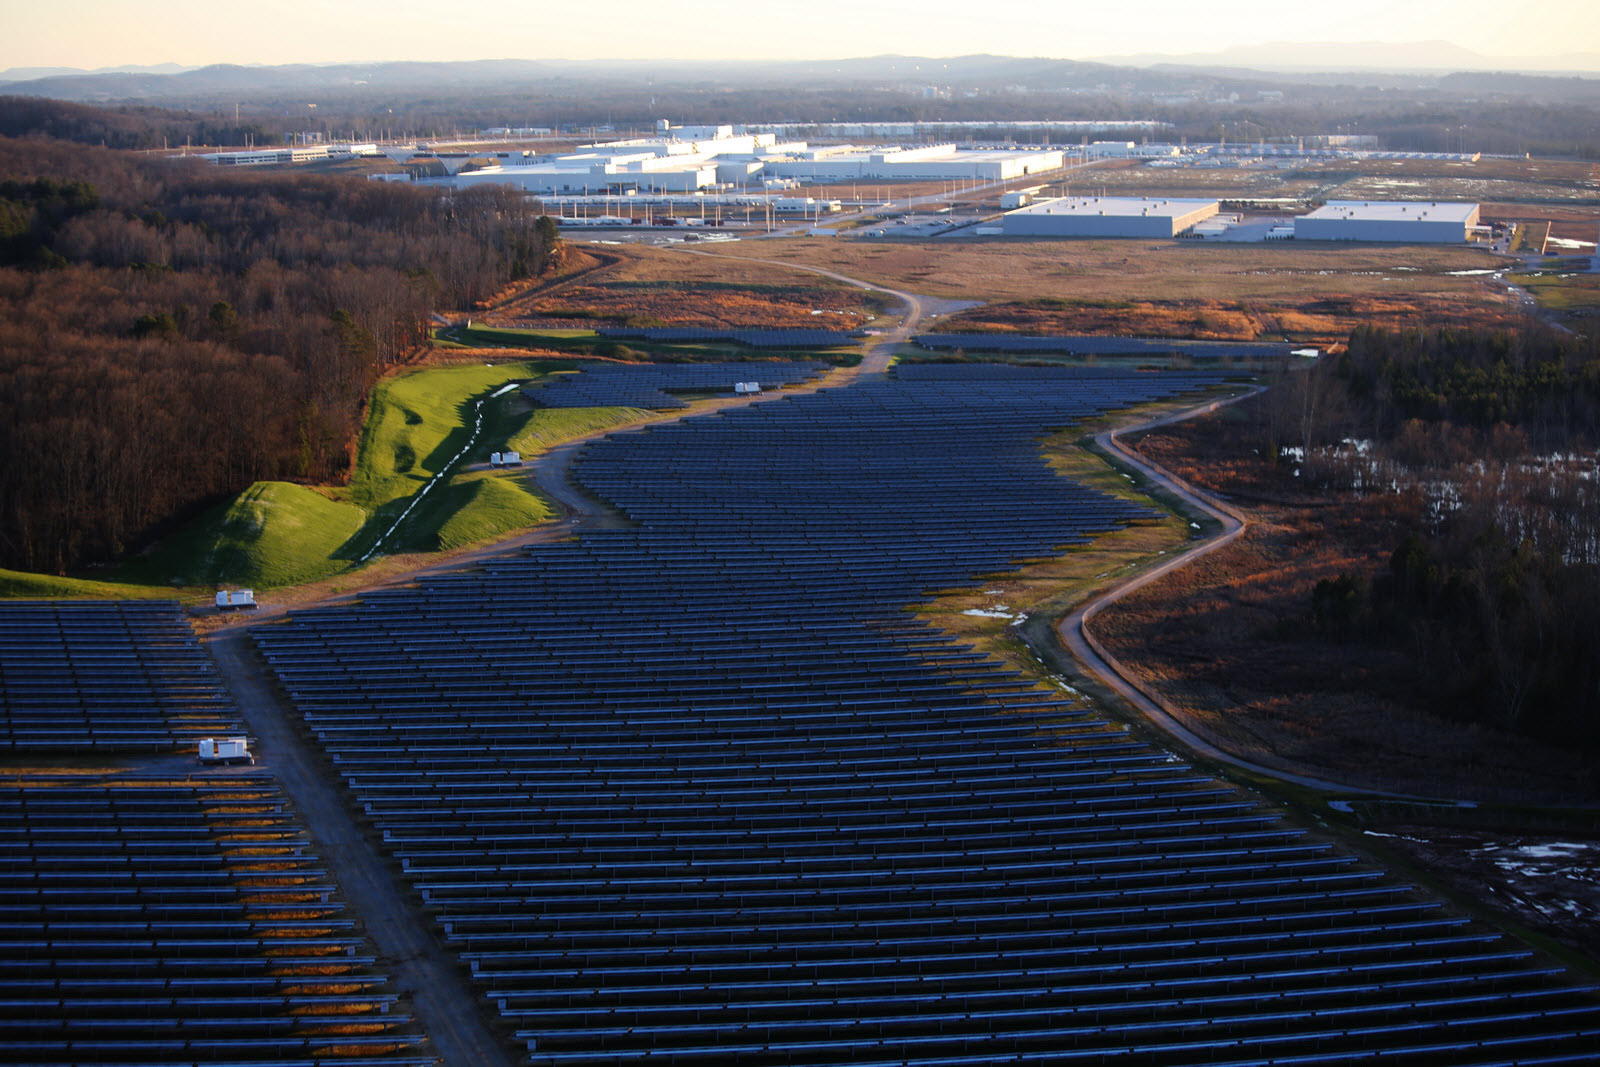 Volkswagen Chattanooga Powers Up Largest Solar Park In